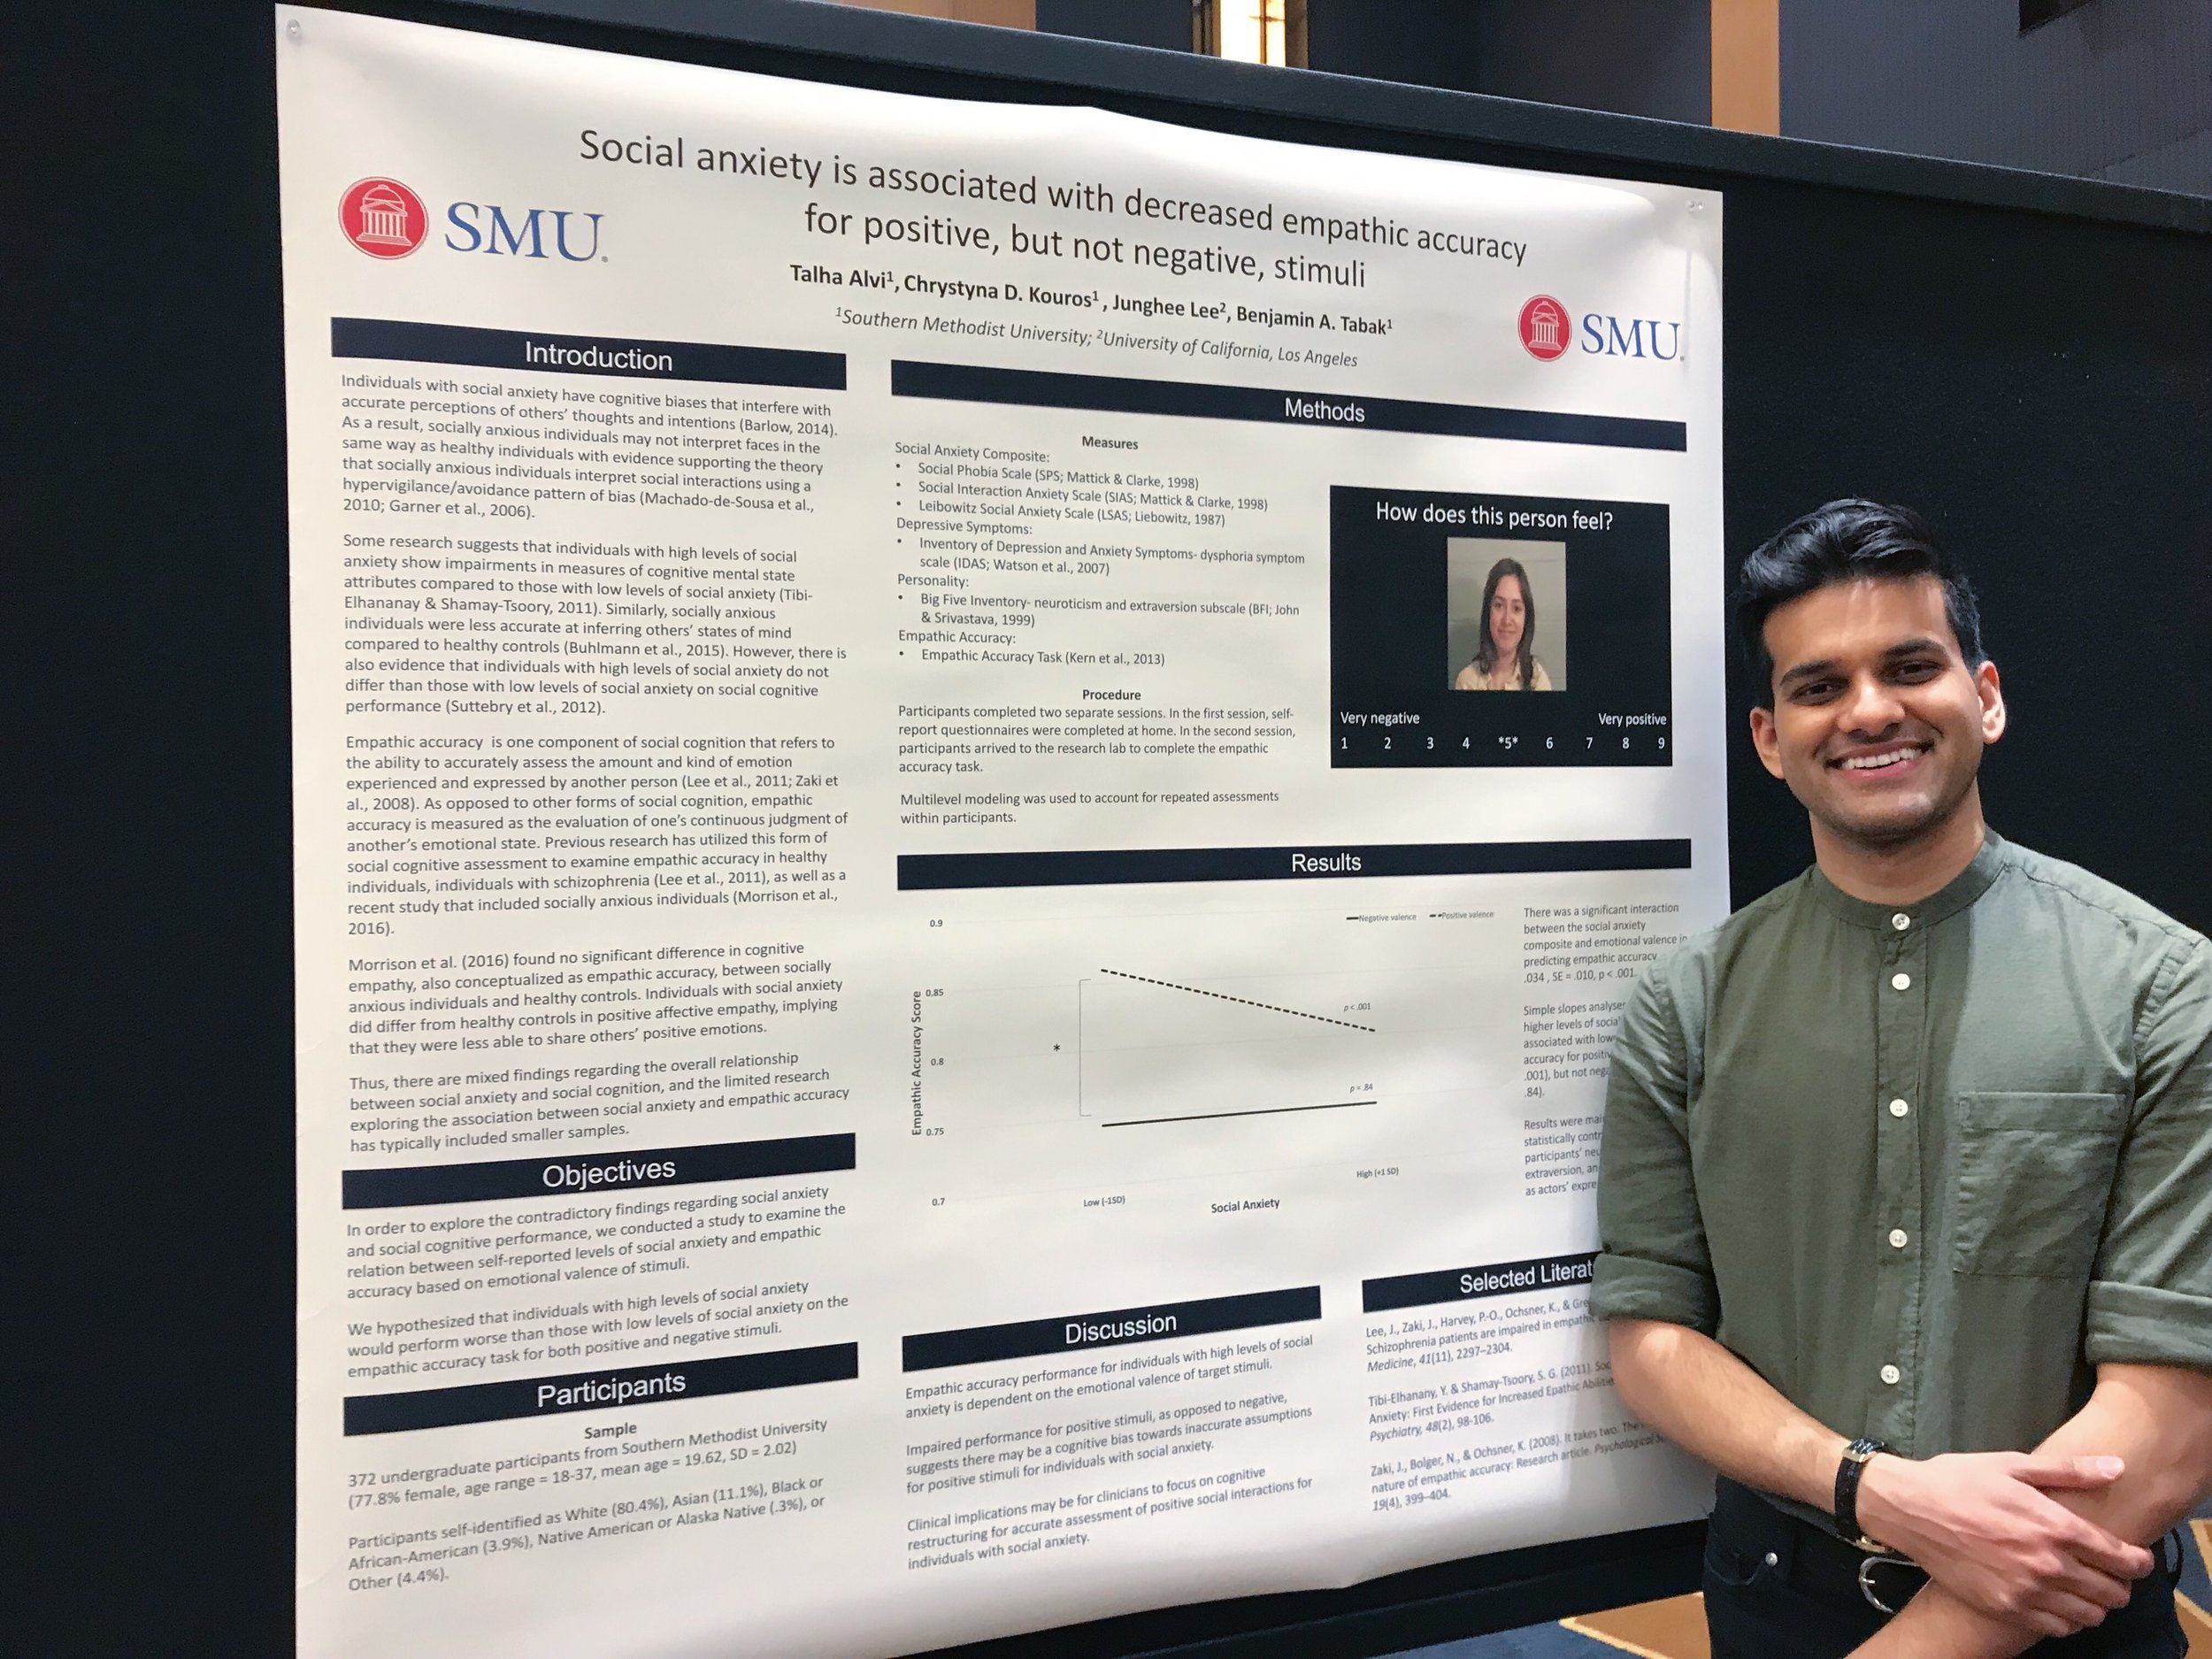 - In April, Talha presented his interesting work showing a link between social anxiety and social cognitive impairment. In addition to attending the SAS conference, Talha was able check out the canals in Venice, the Santa Monica Pier, and most importantly, Dr. Tabak's favorite sushi restaurant: Sugarfish.